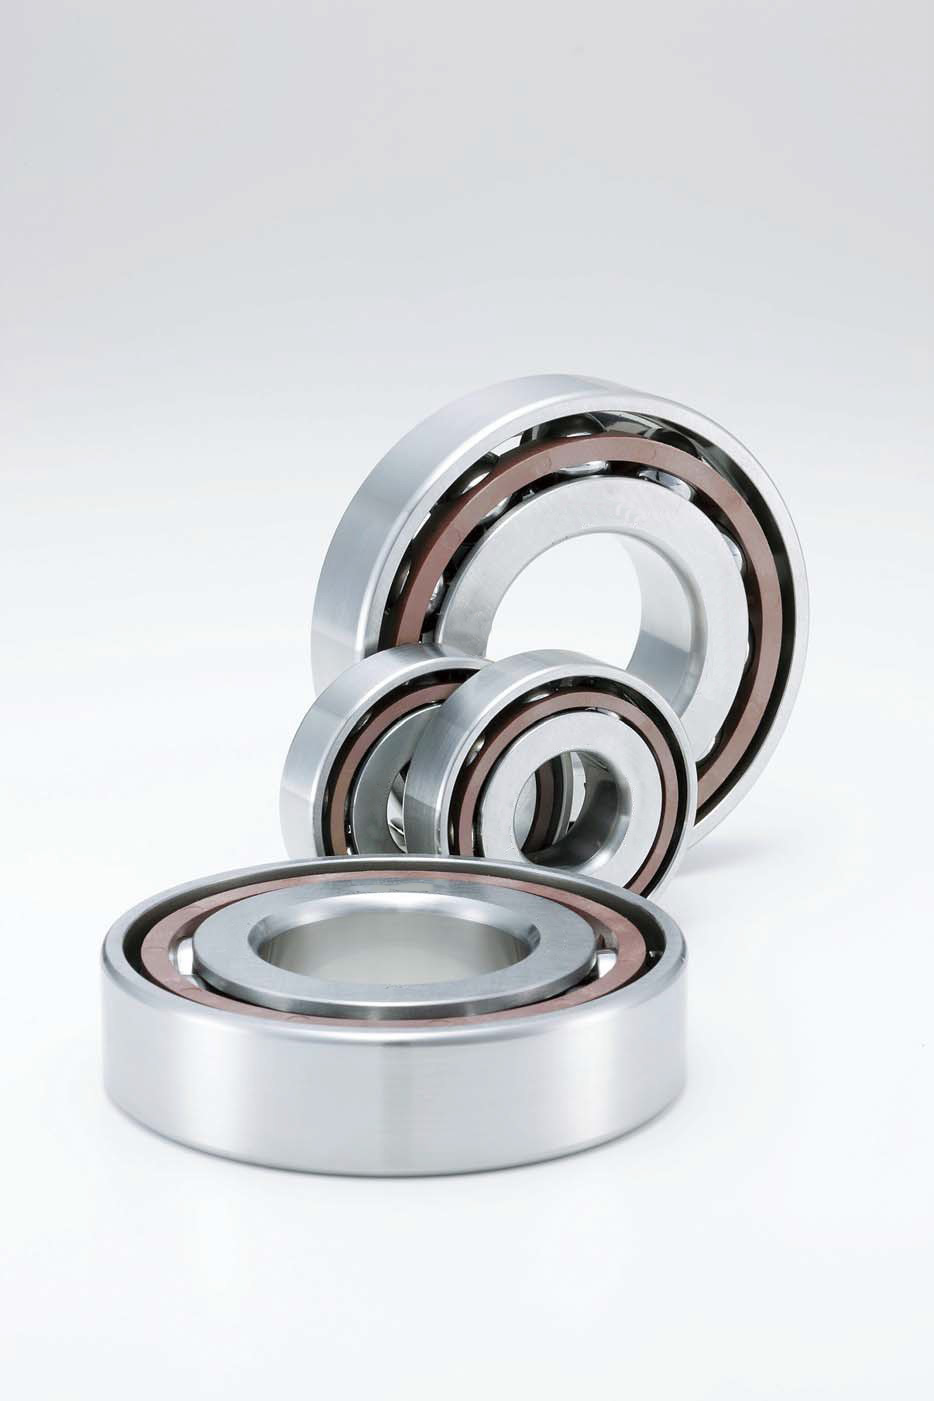 7005C TYN SUL P4 Spindle Angular Contact Ball Bearings ABEC-7 7005 7005C 7005AC 25x47x12 SUPER PRECISION BEARING rp022 5 3 3